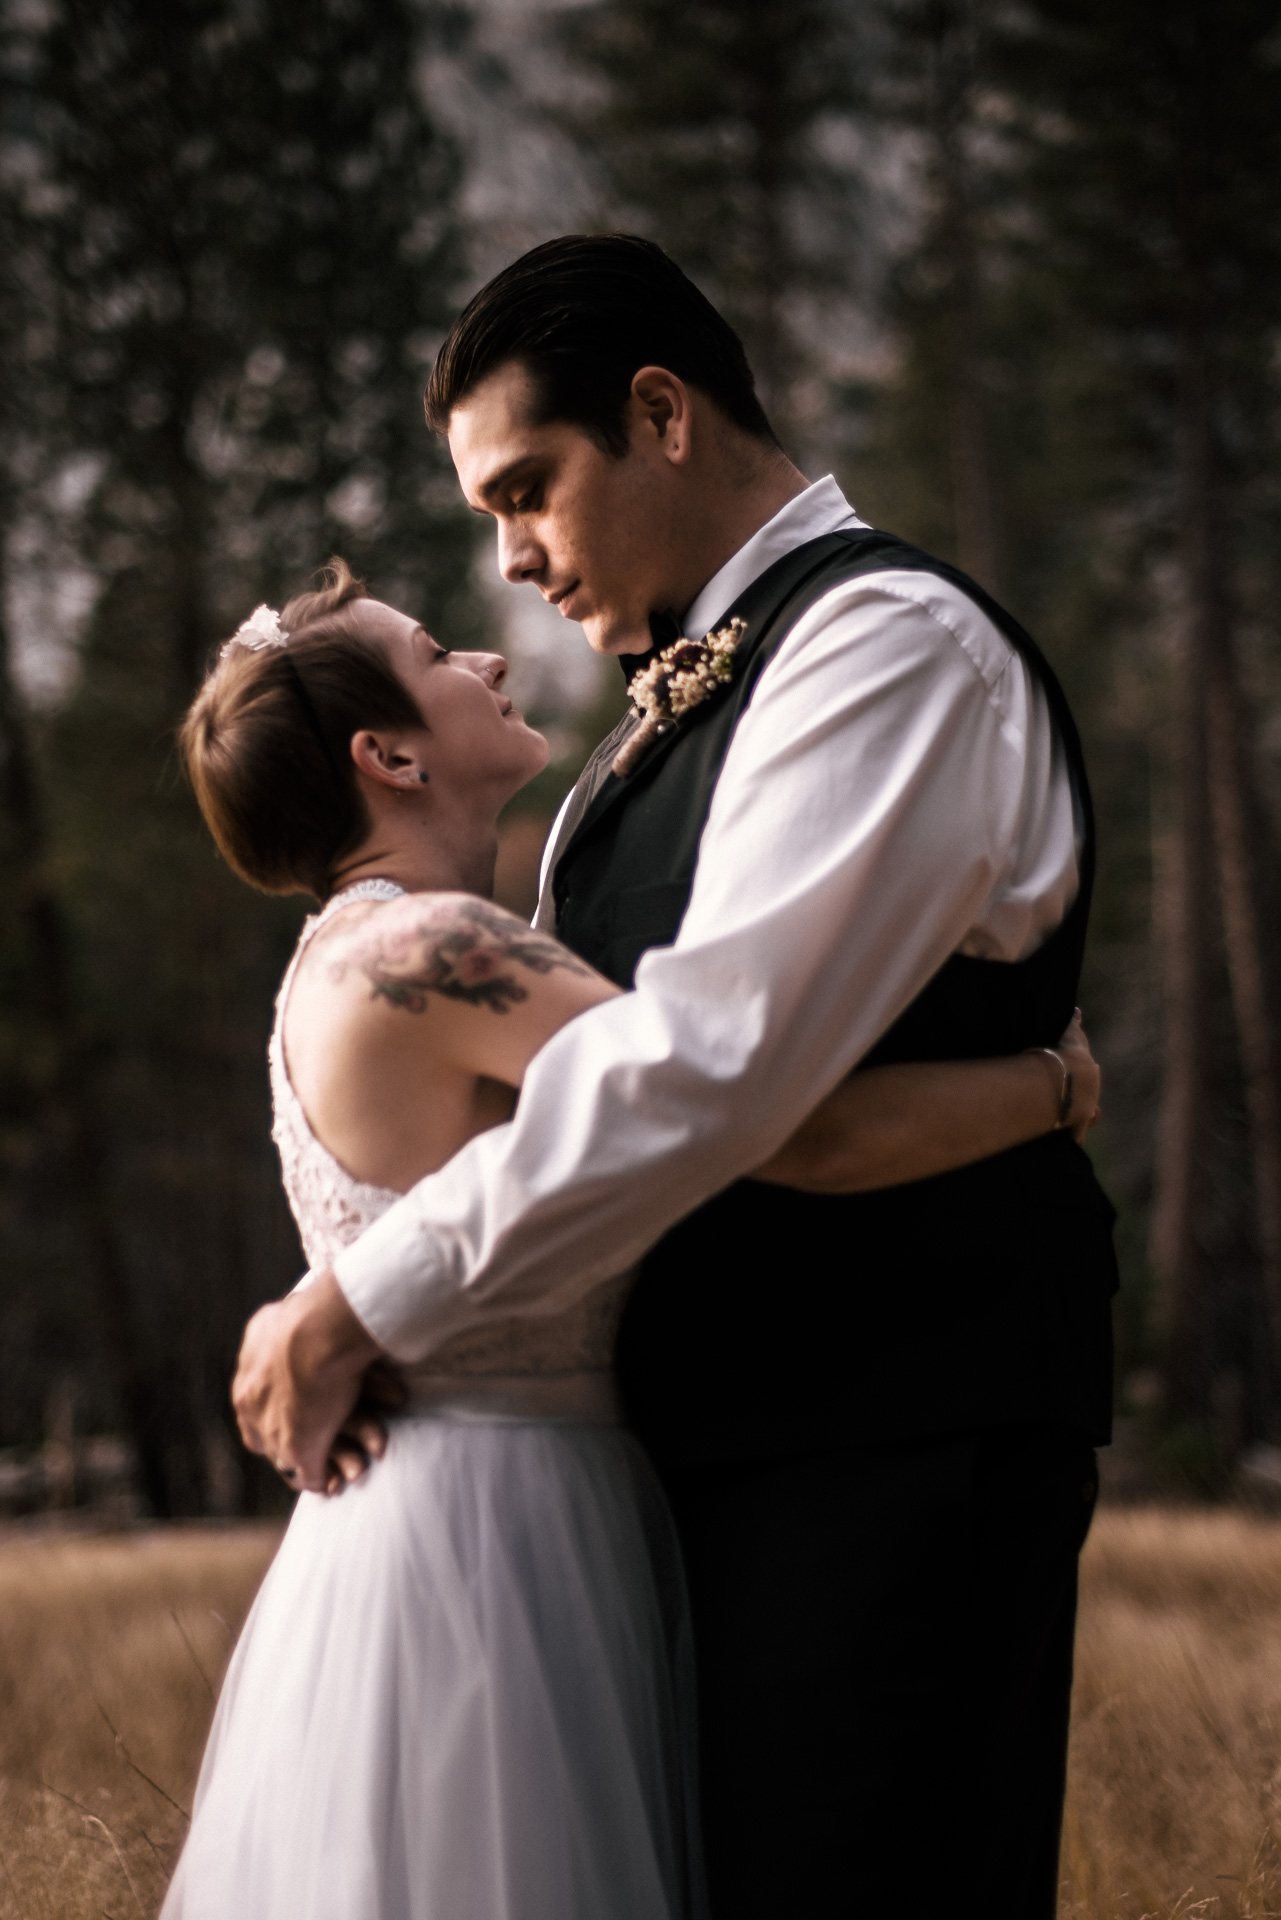 couple elopes to yosemite national park for a romantic wedding captured by theri elopement photographer